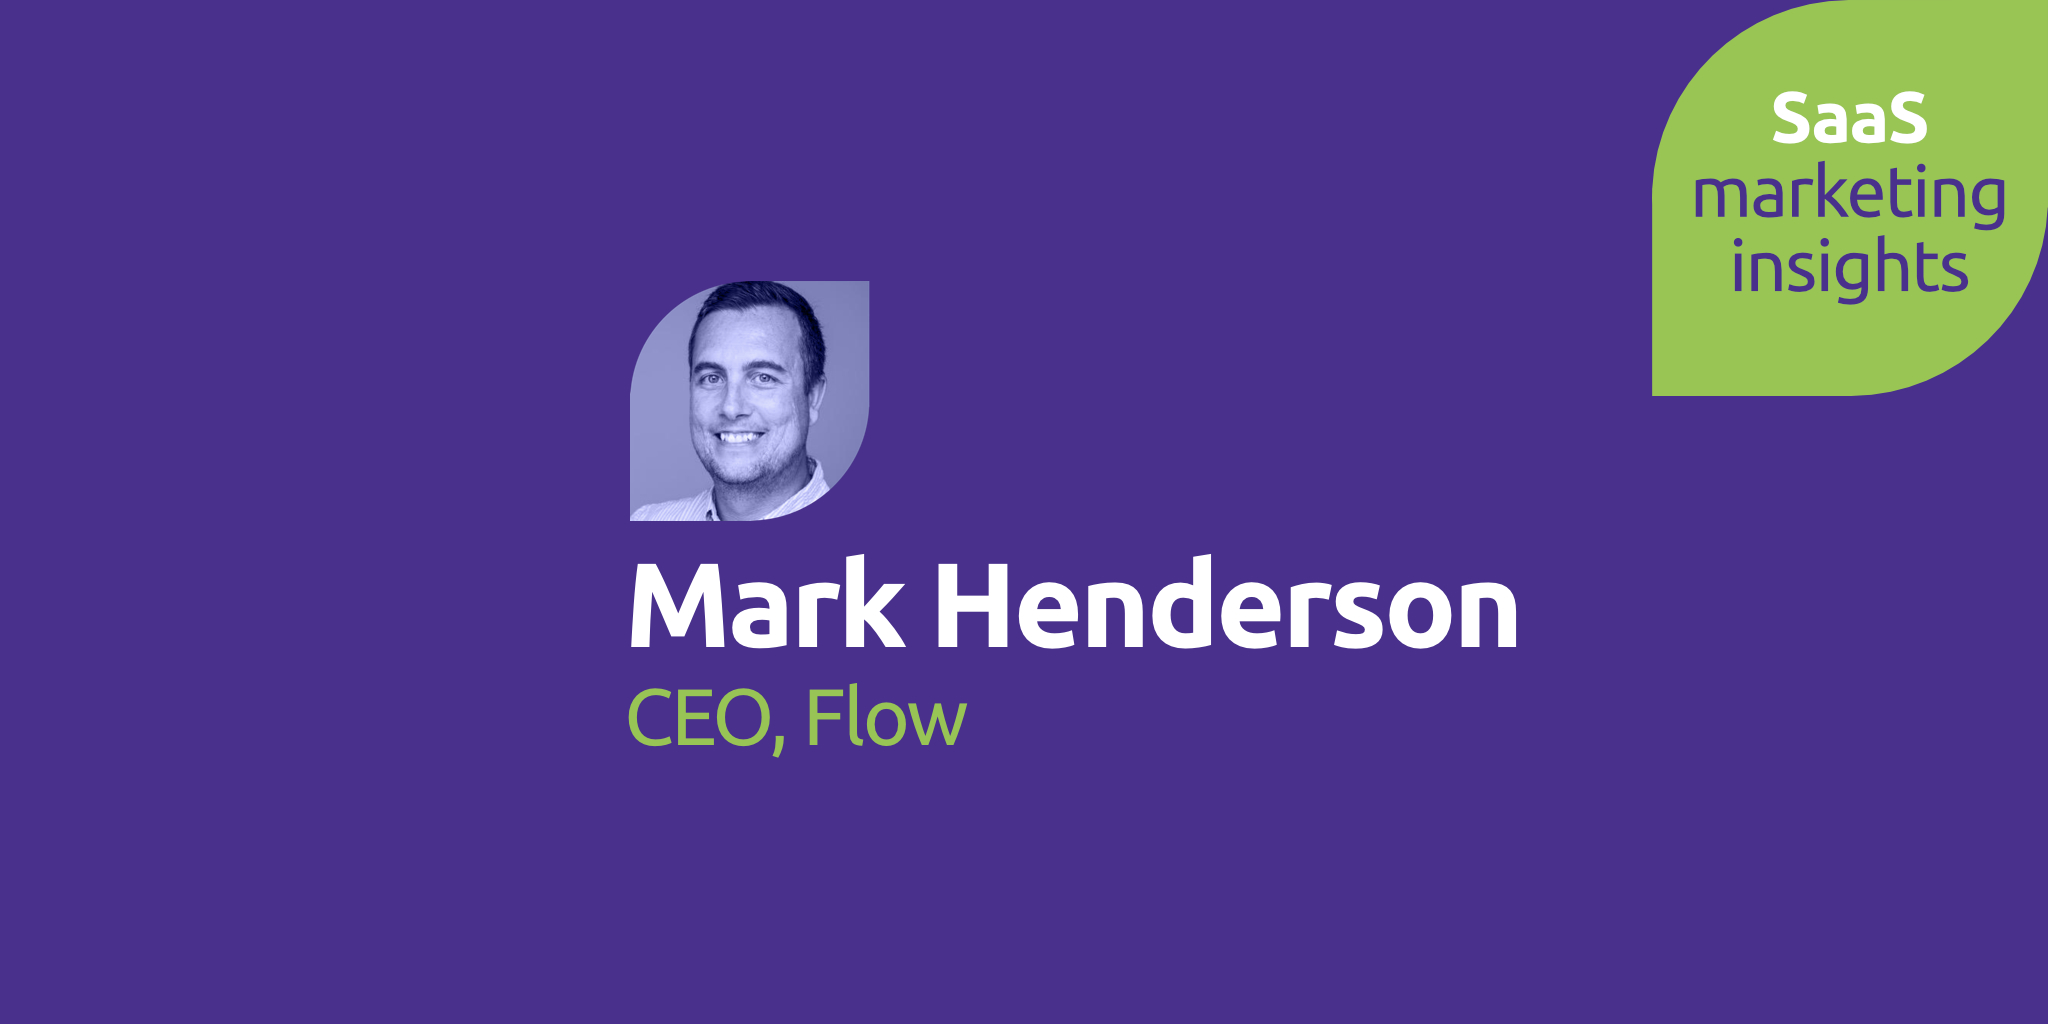 Mark Henderson, Flow